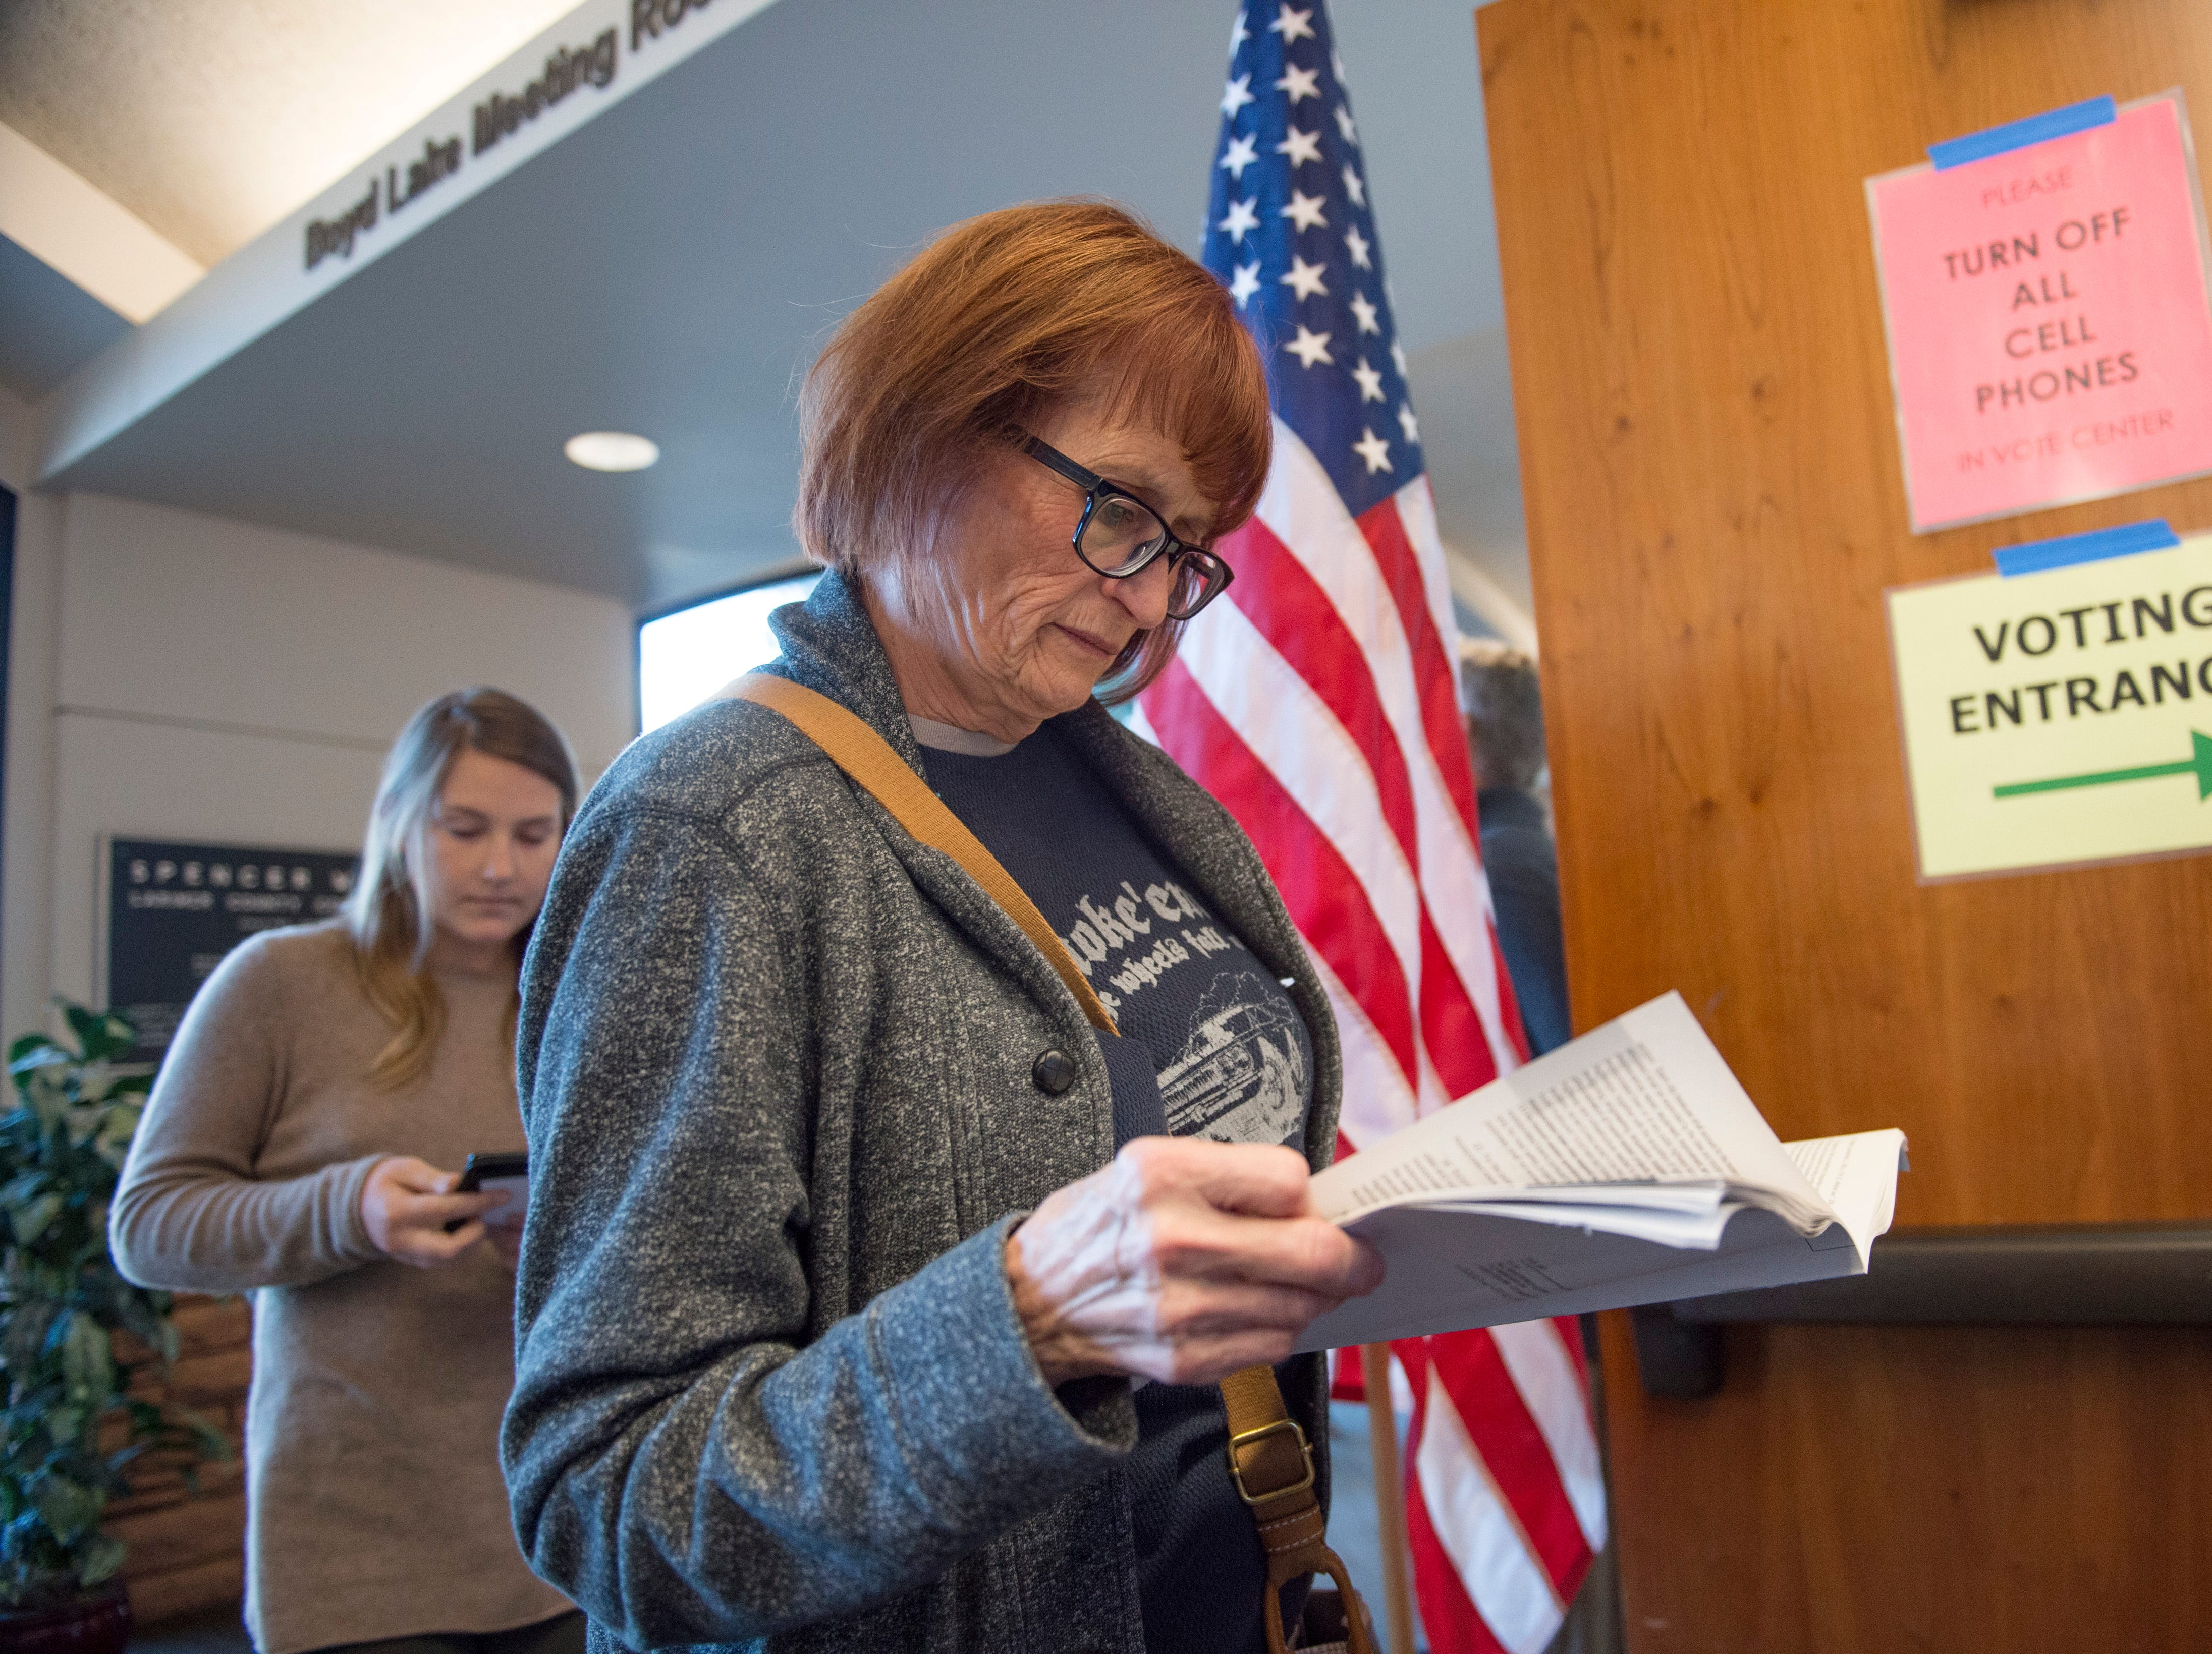 Christine Feldbush reviews a voter's guide as she waits in line to cast her ballot at the Larimer County Courthouse on Election Day, Monday, November 6, 2018.